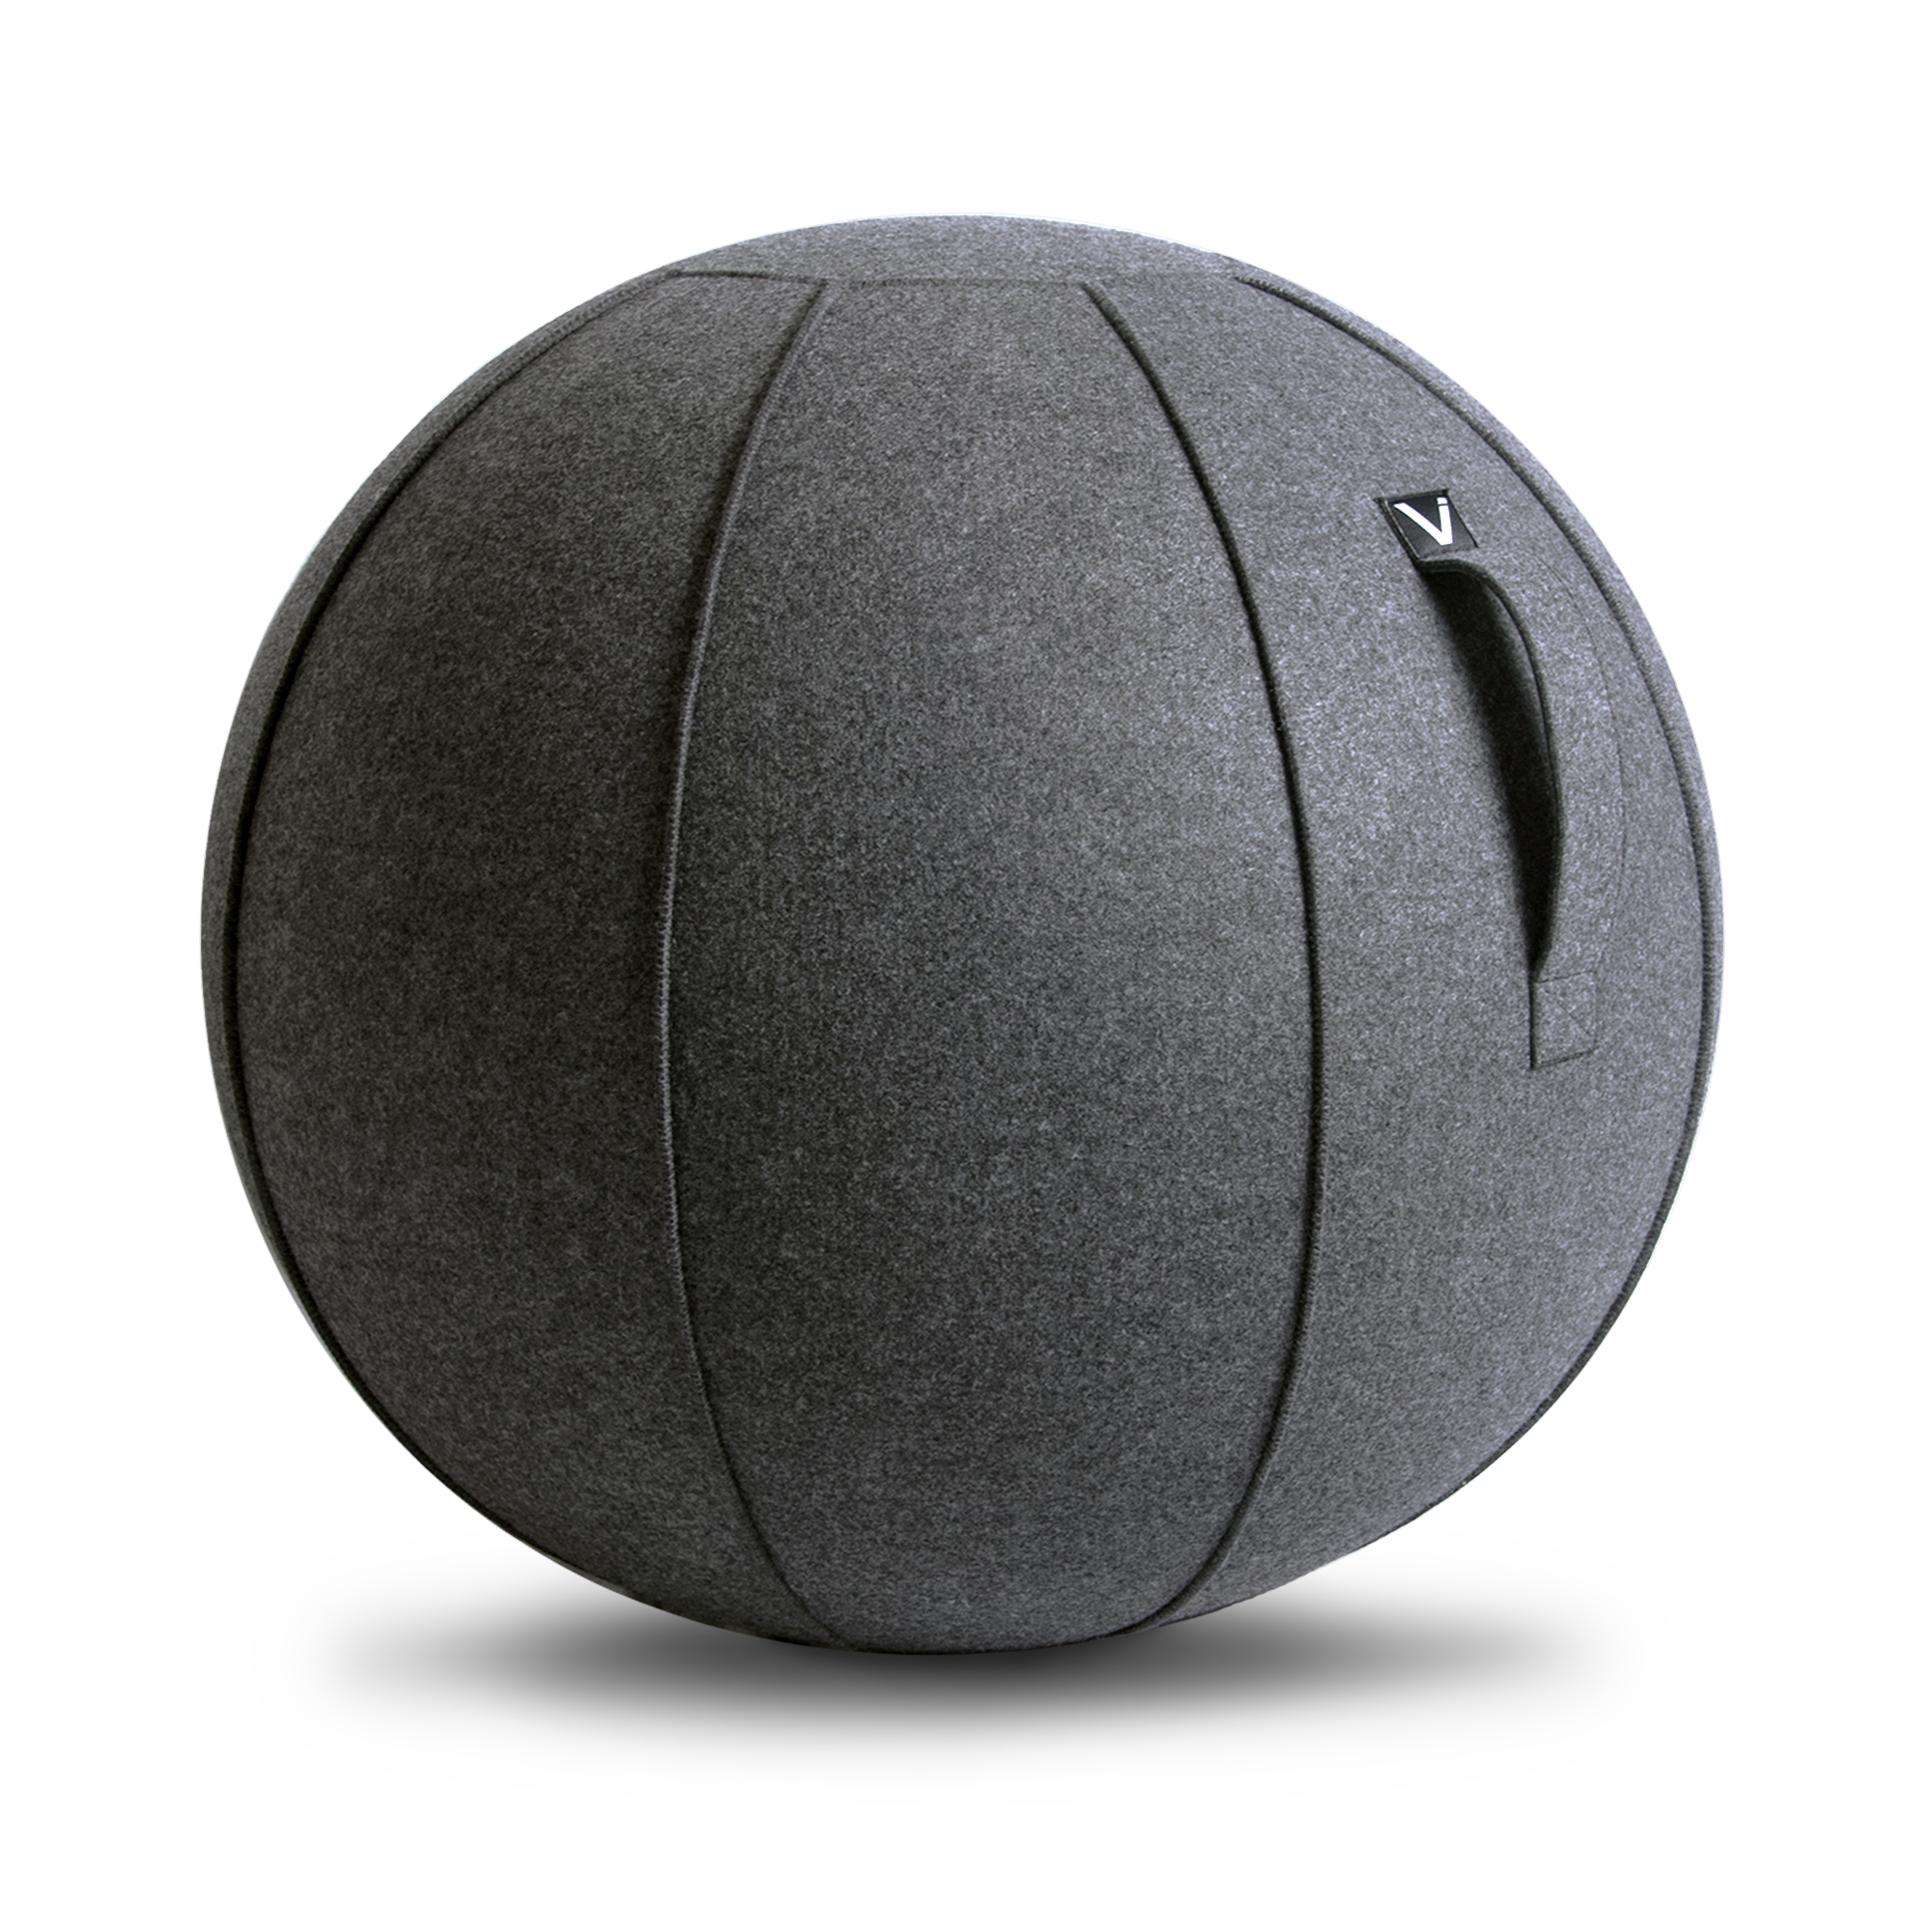 Luno Standard Classic Series Felt Sitting Ball Chair With Handle Anthracite Vivora